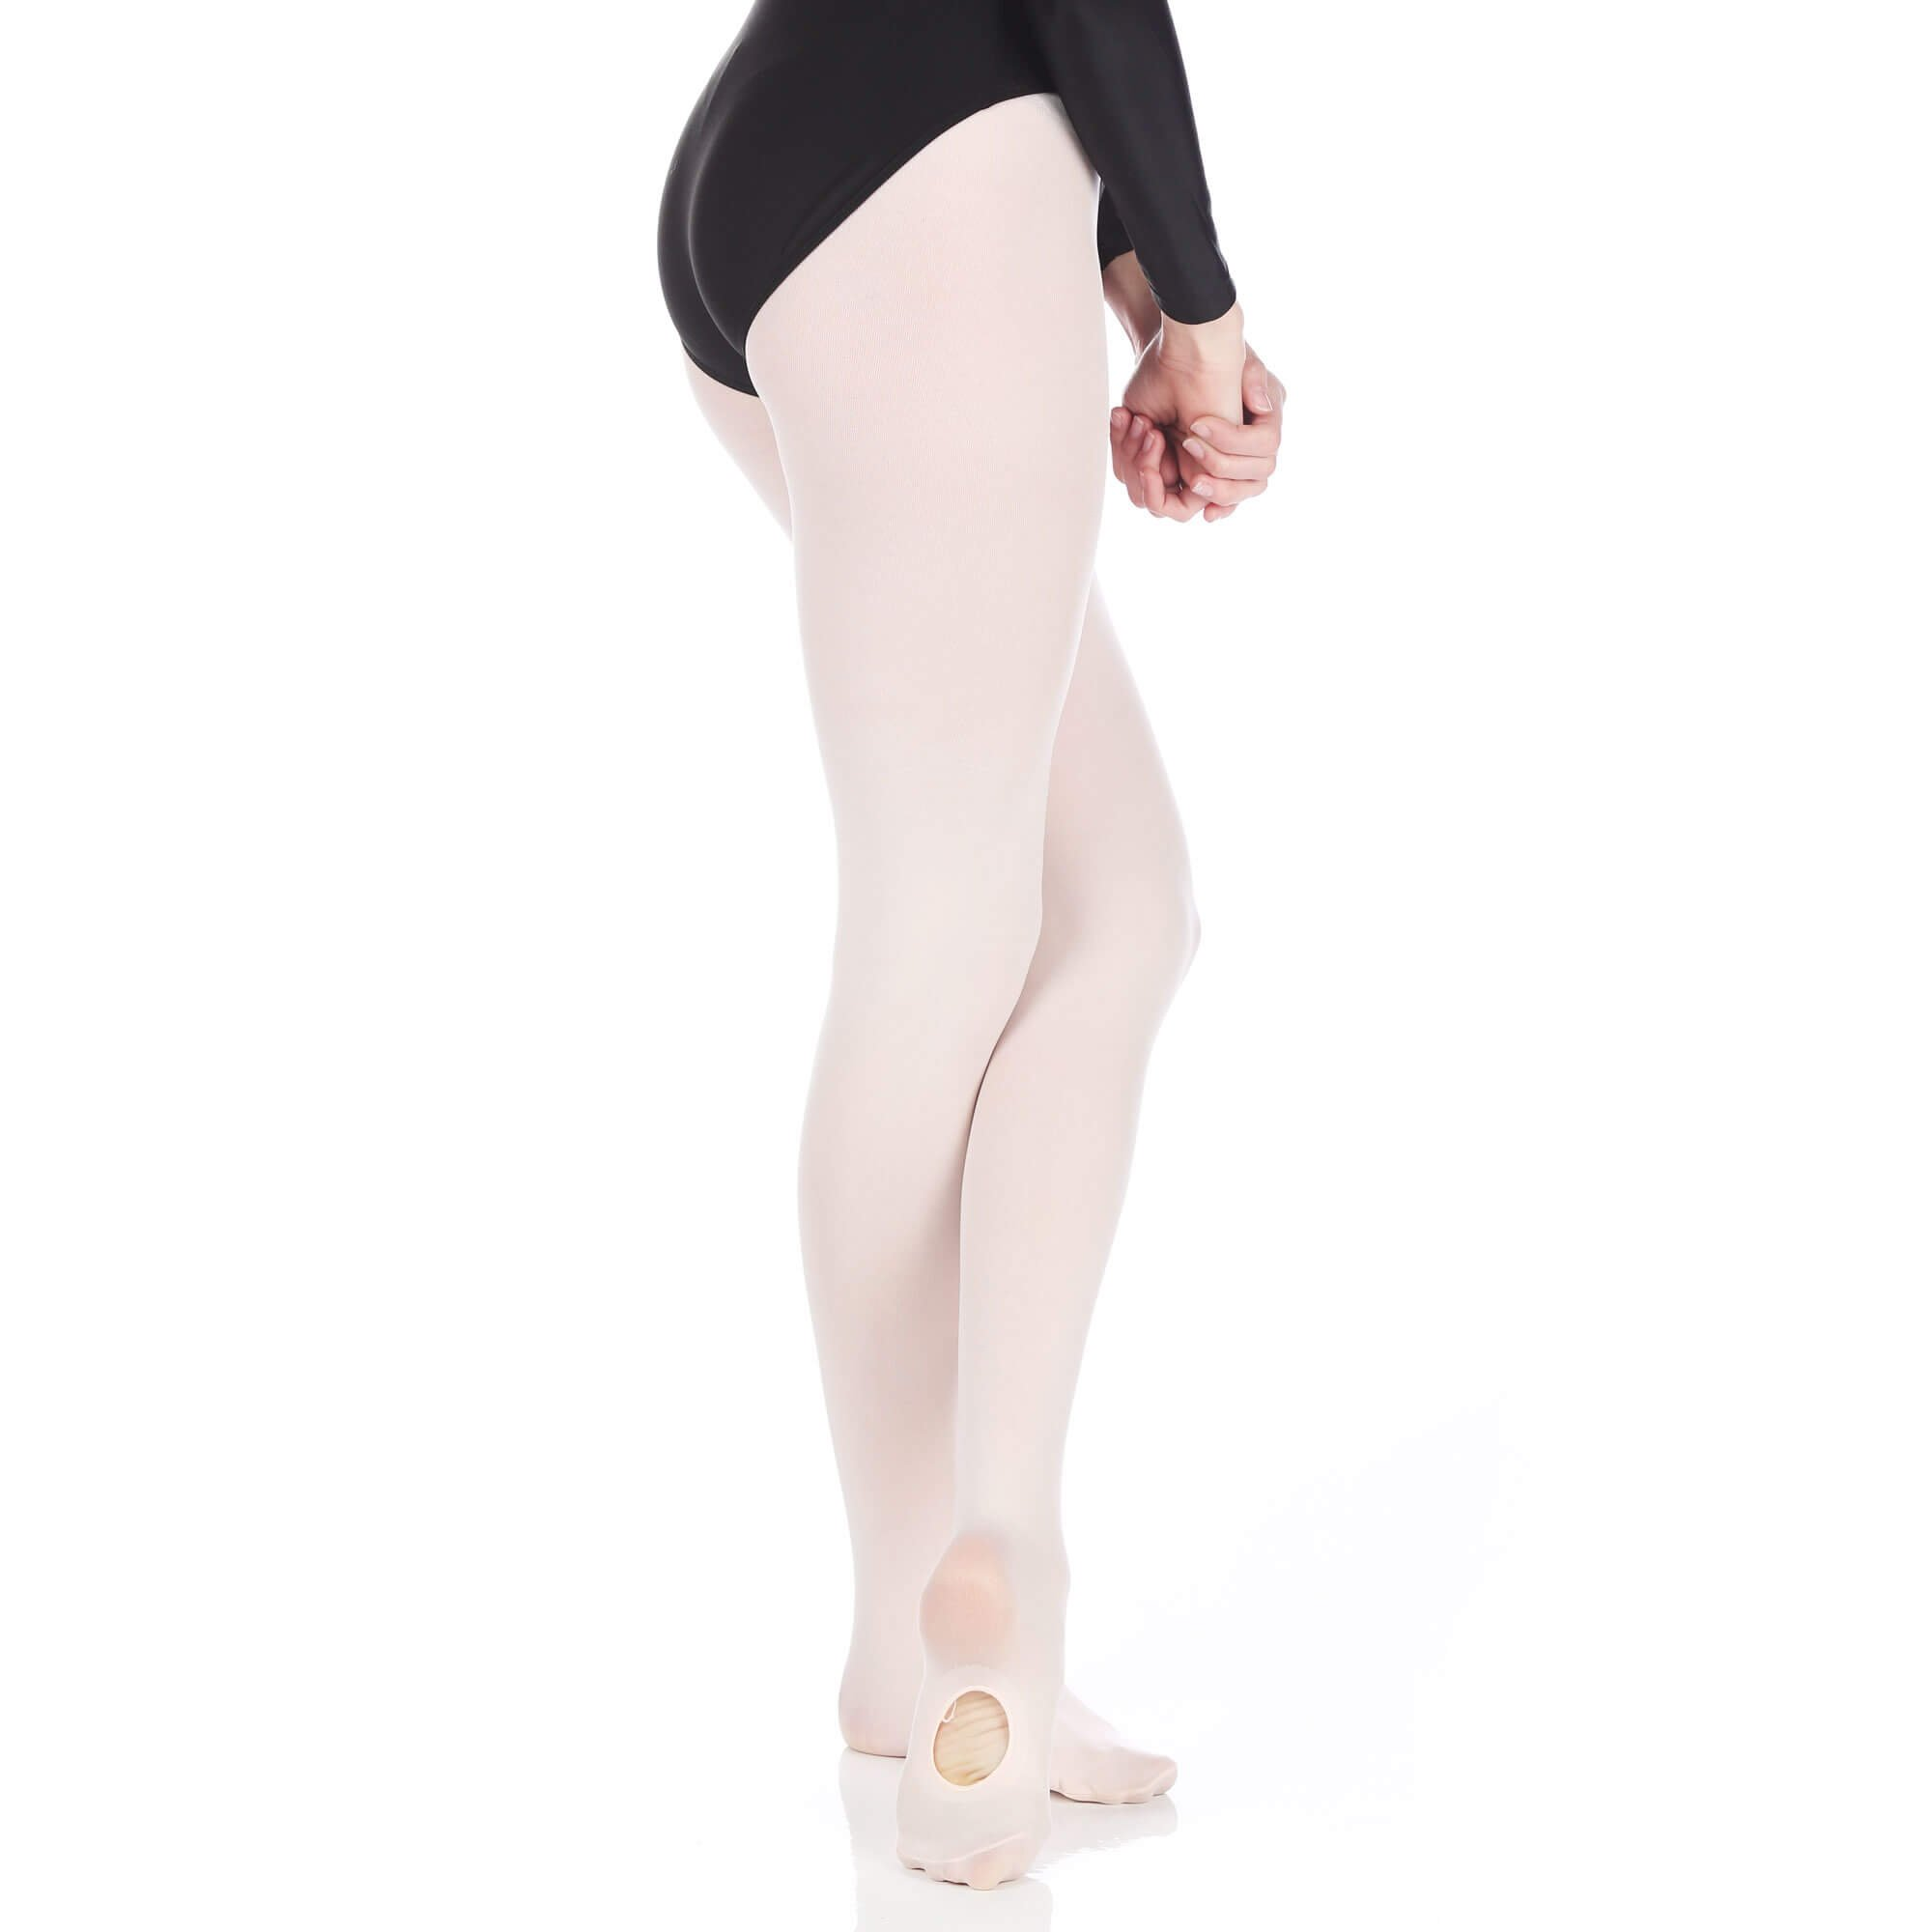 Danzcue Womens Ultrasoft Stretch Convertible Tights